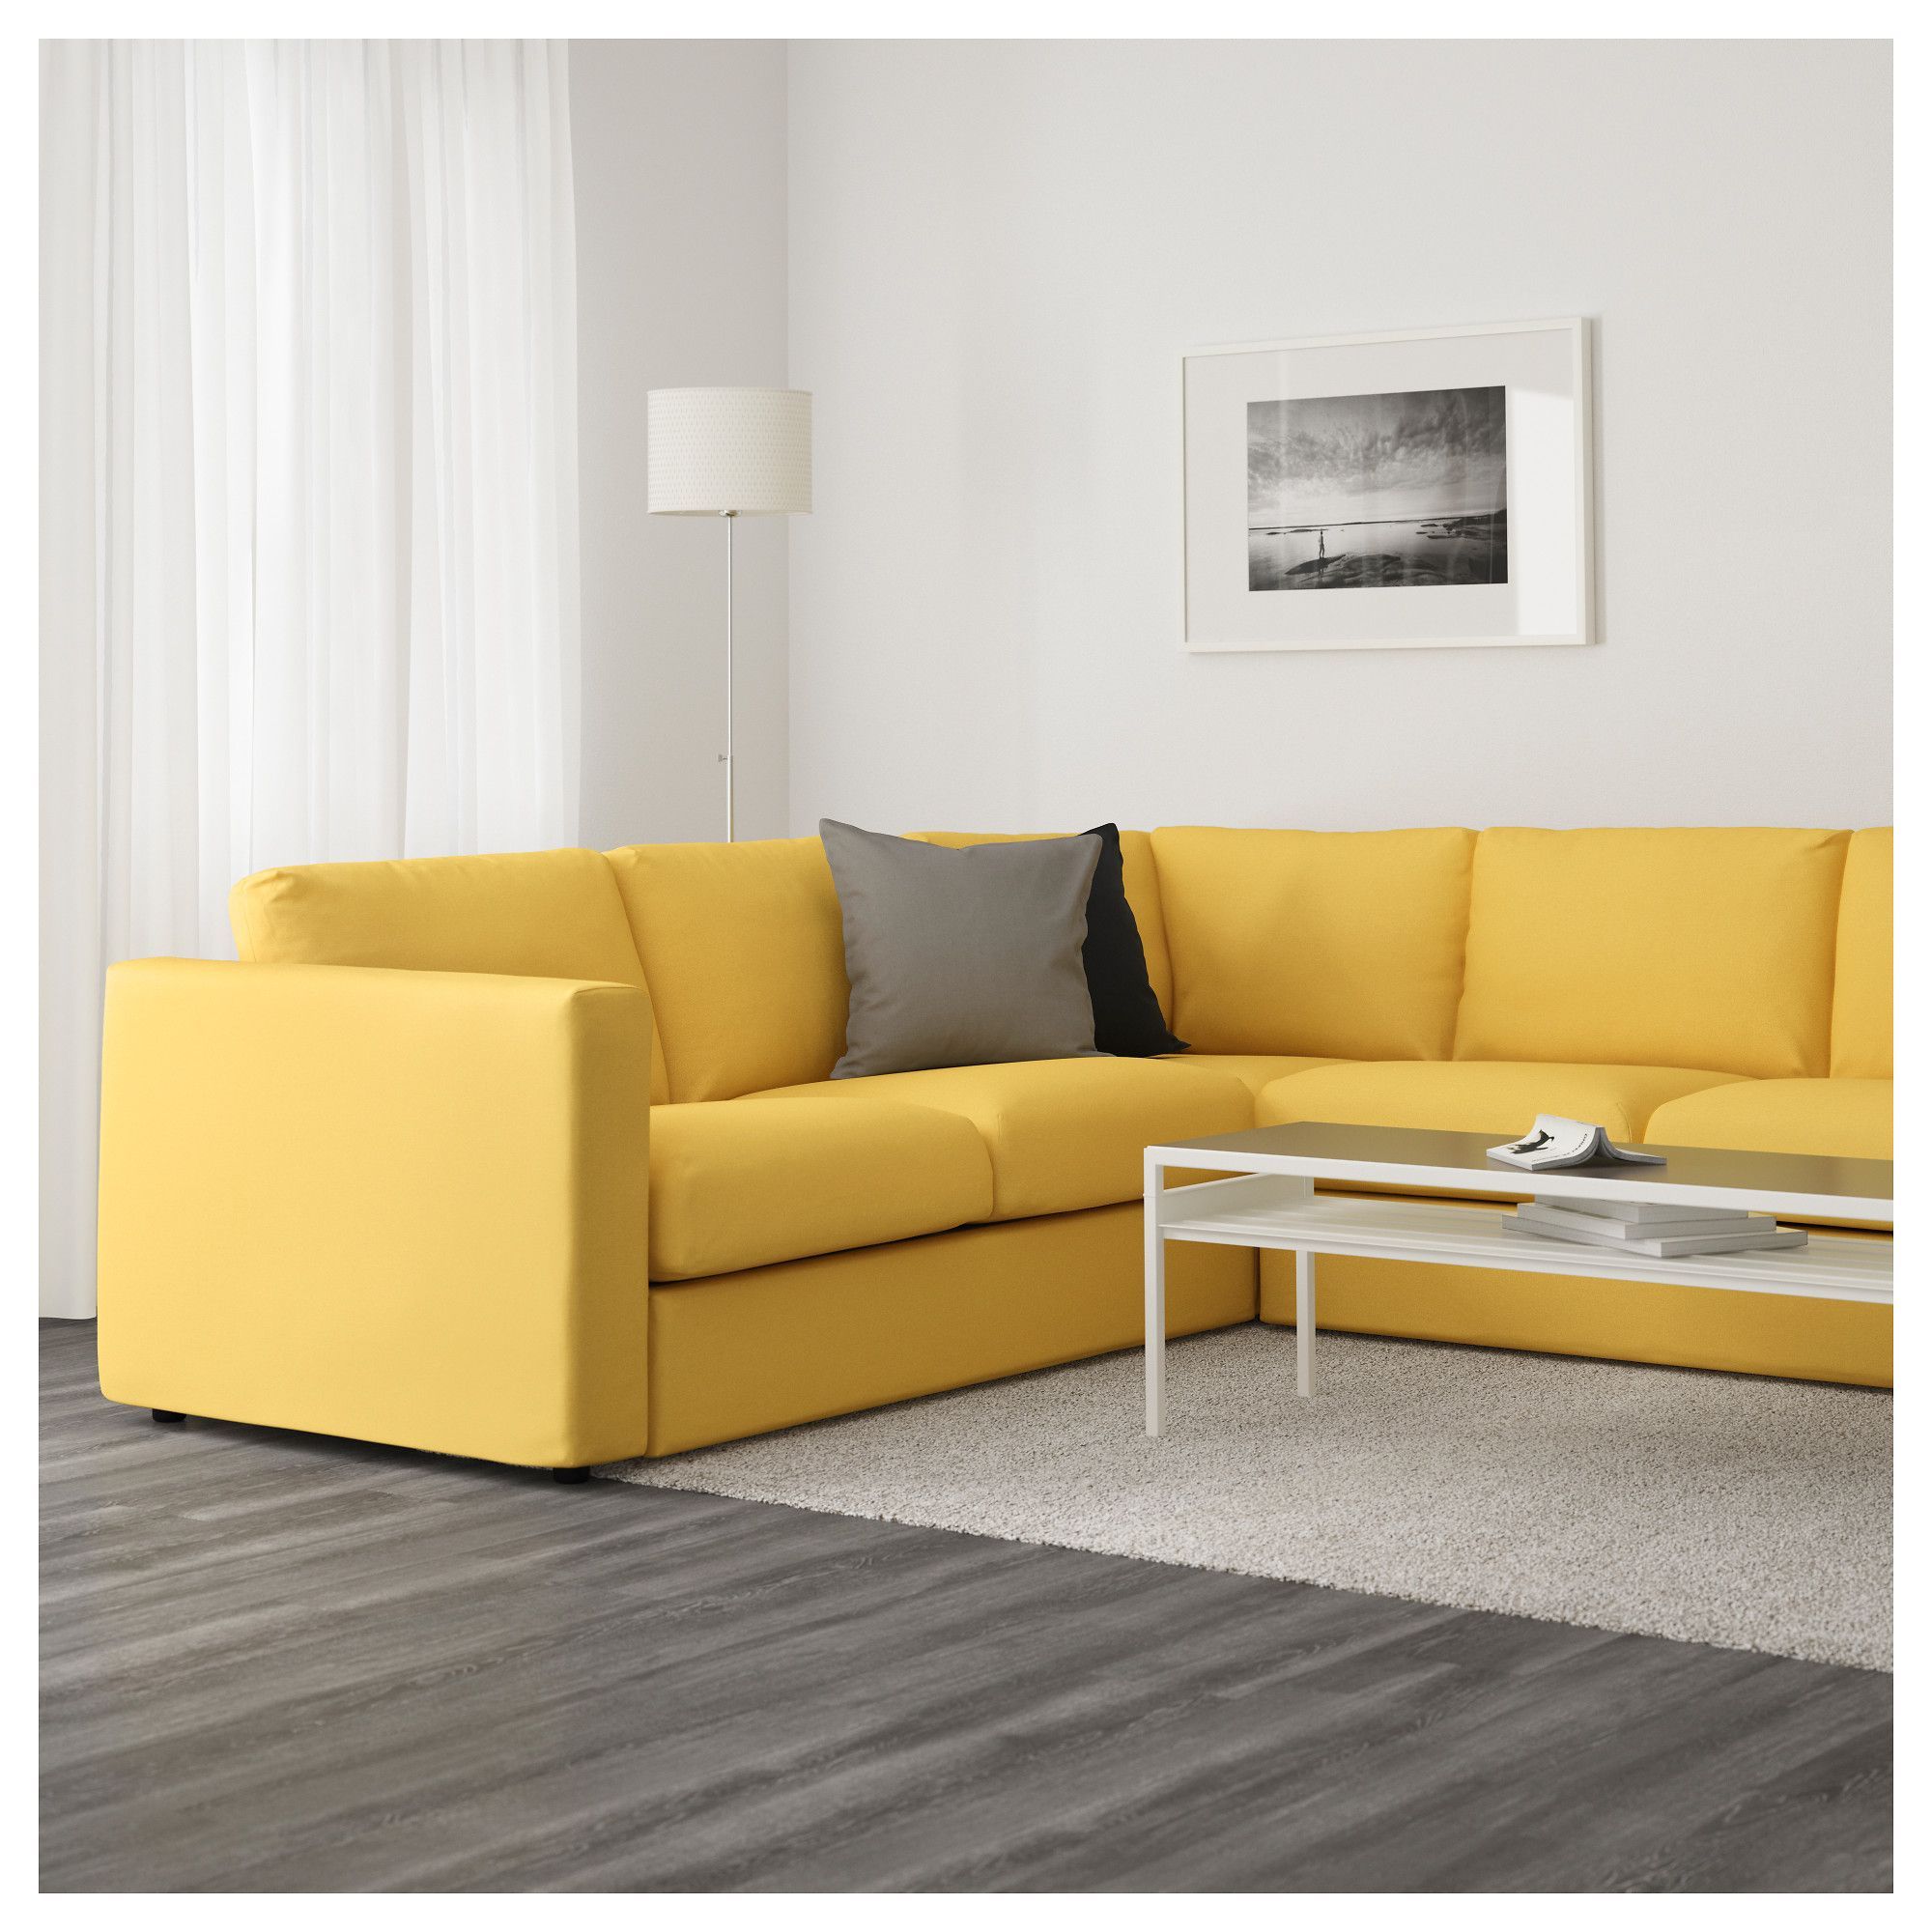 Furniture Home Furnishings Find Your Inspiration Corner Sofa Modern Large Sectional Sofa Furniture